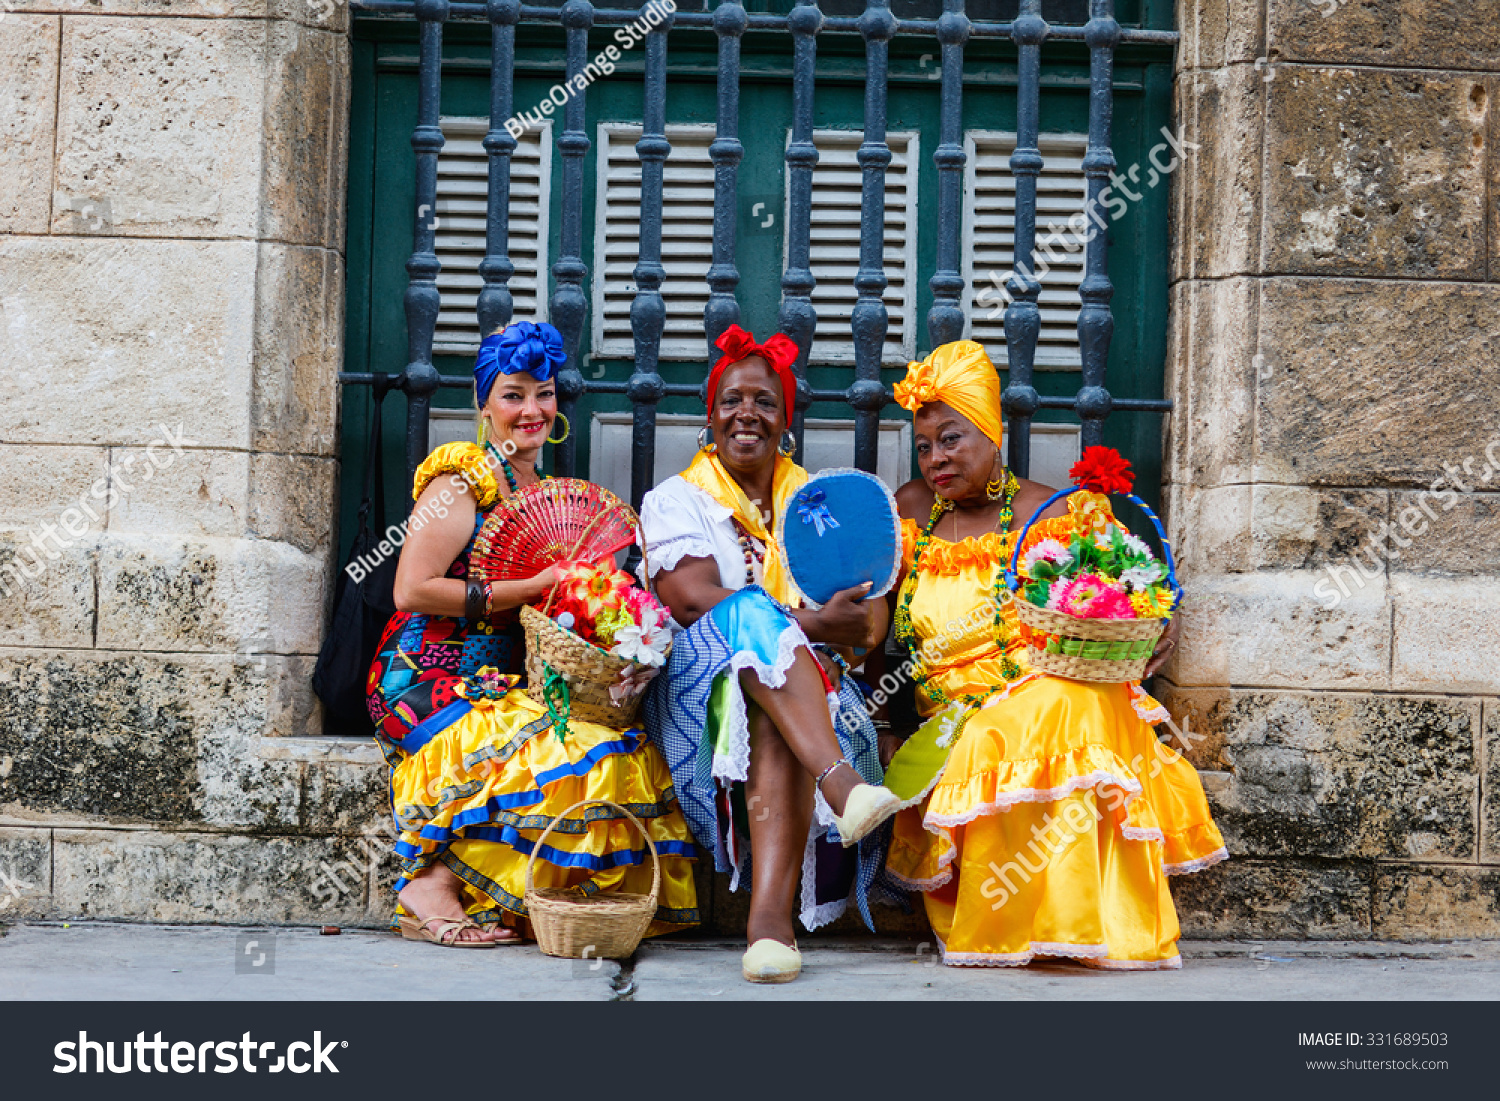 Havana Cuba July 17 2013 Cuban Stock Photo Edit Now 331689503